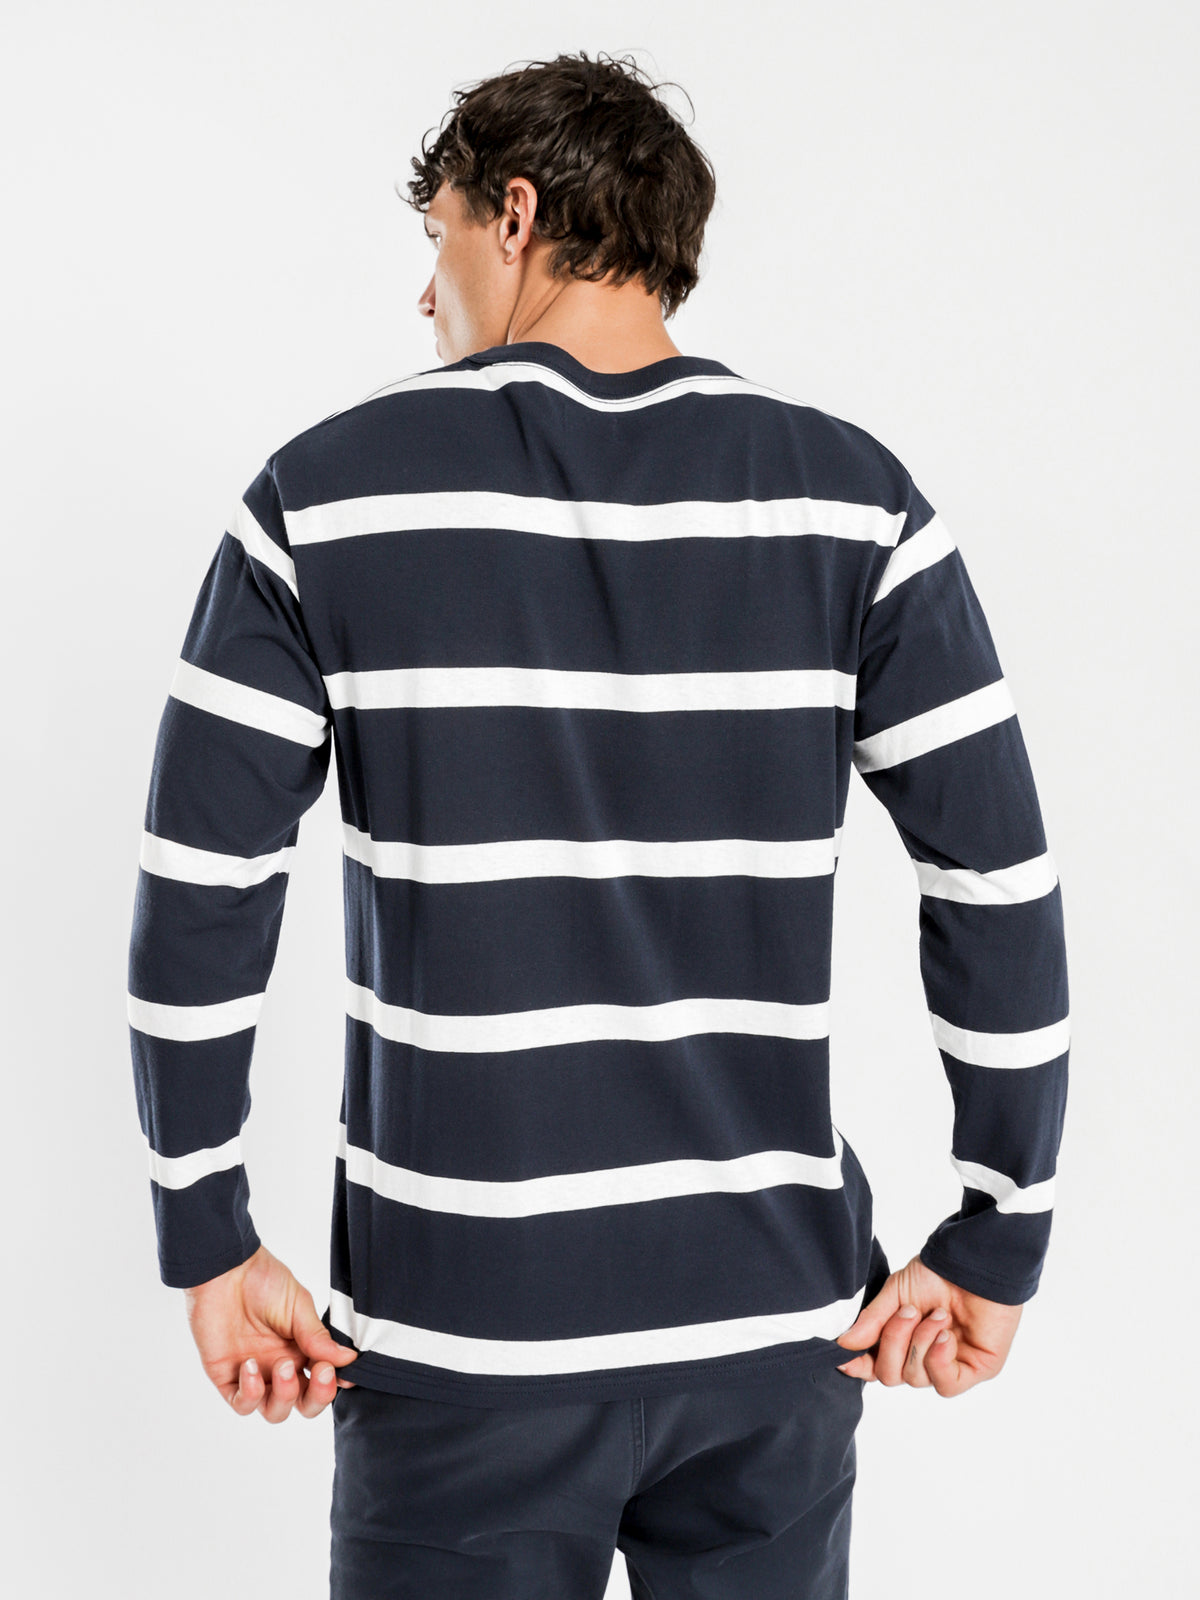 Ezra Long Sleeve T-Shirt in Navy Stripe